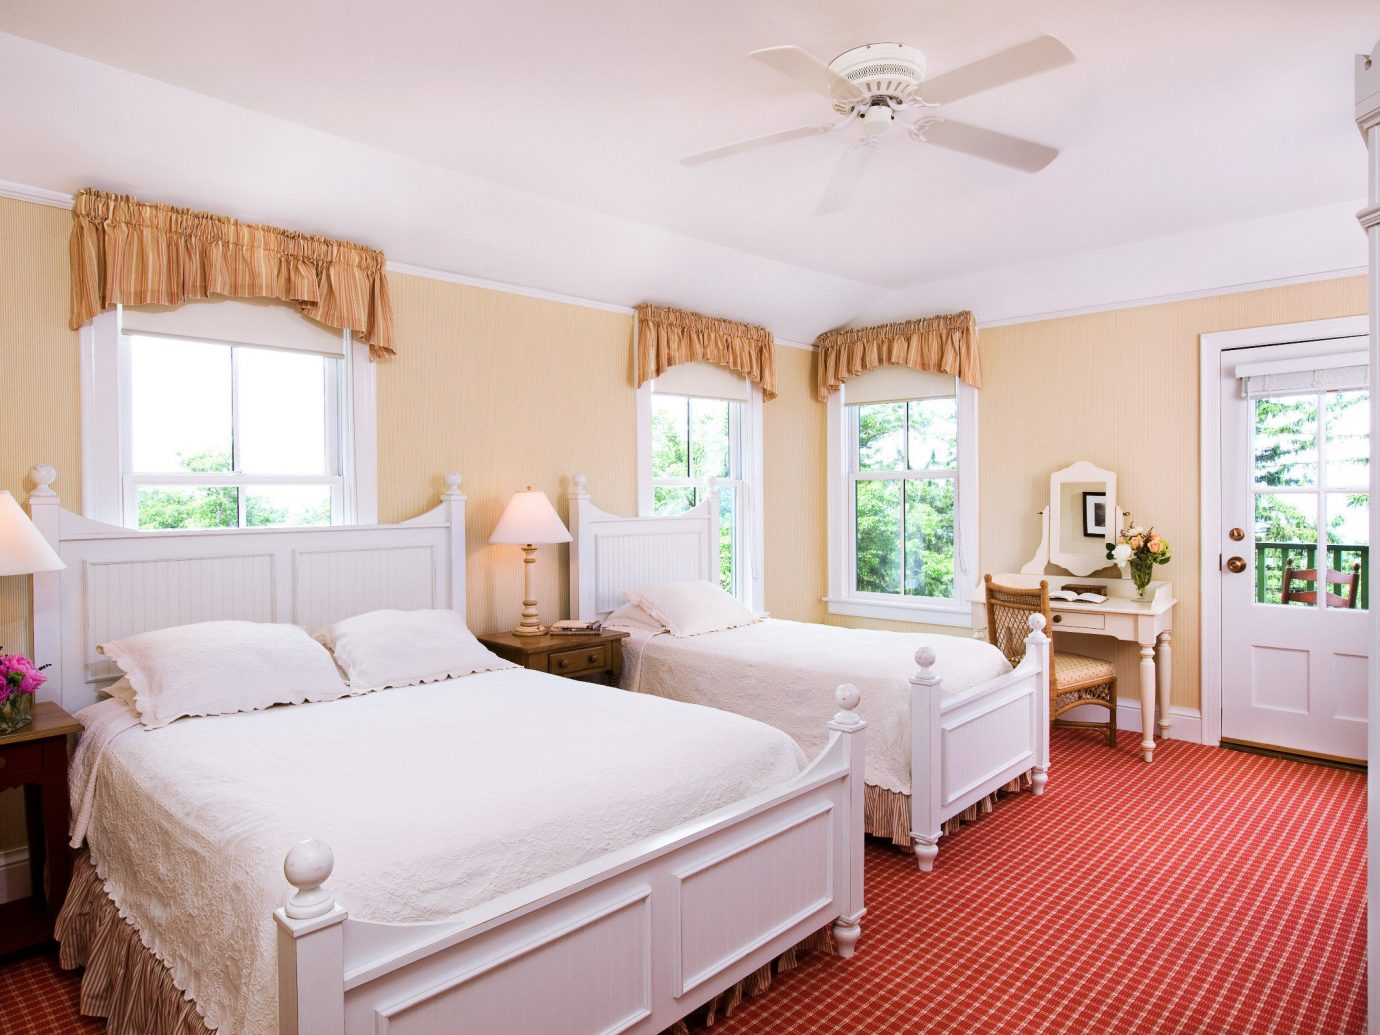 Bedroom Classic Hotels Lakes + Rivers Luxury Mountains Outdoor Activities Resort indoor floor wall room bed ceiling property estate real estate cottage home interior design Suite several